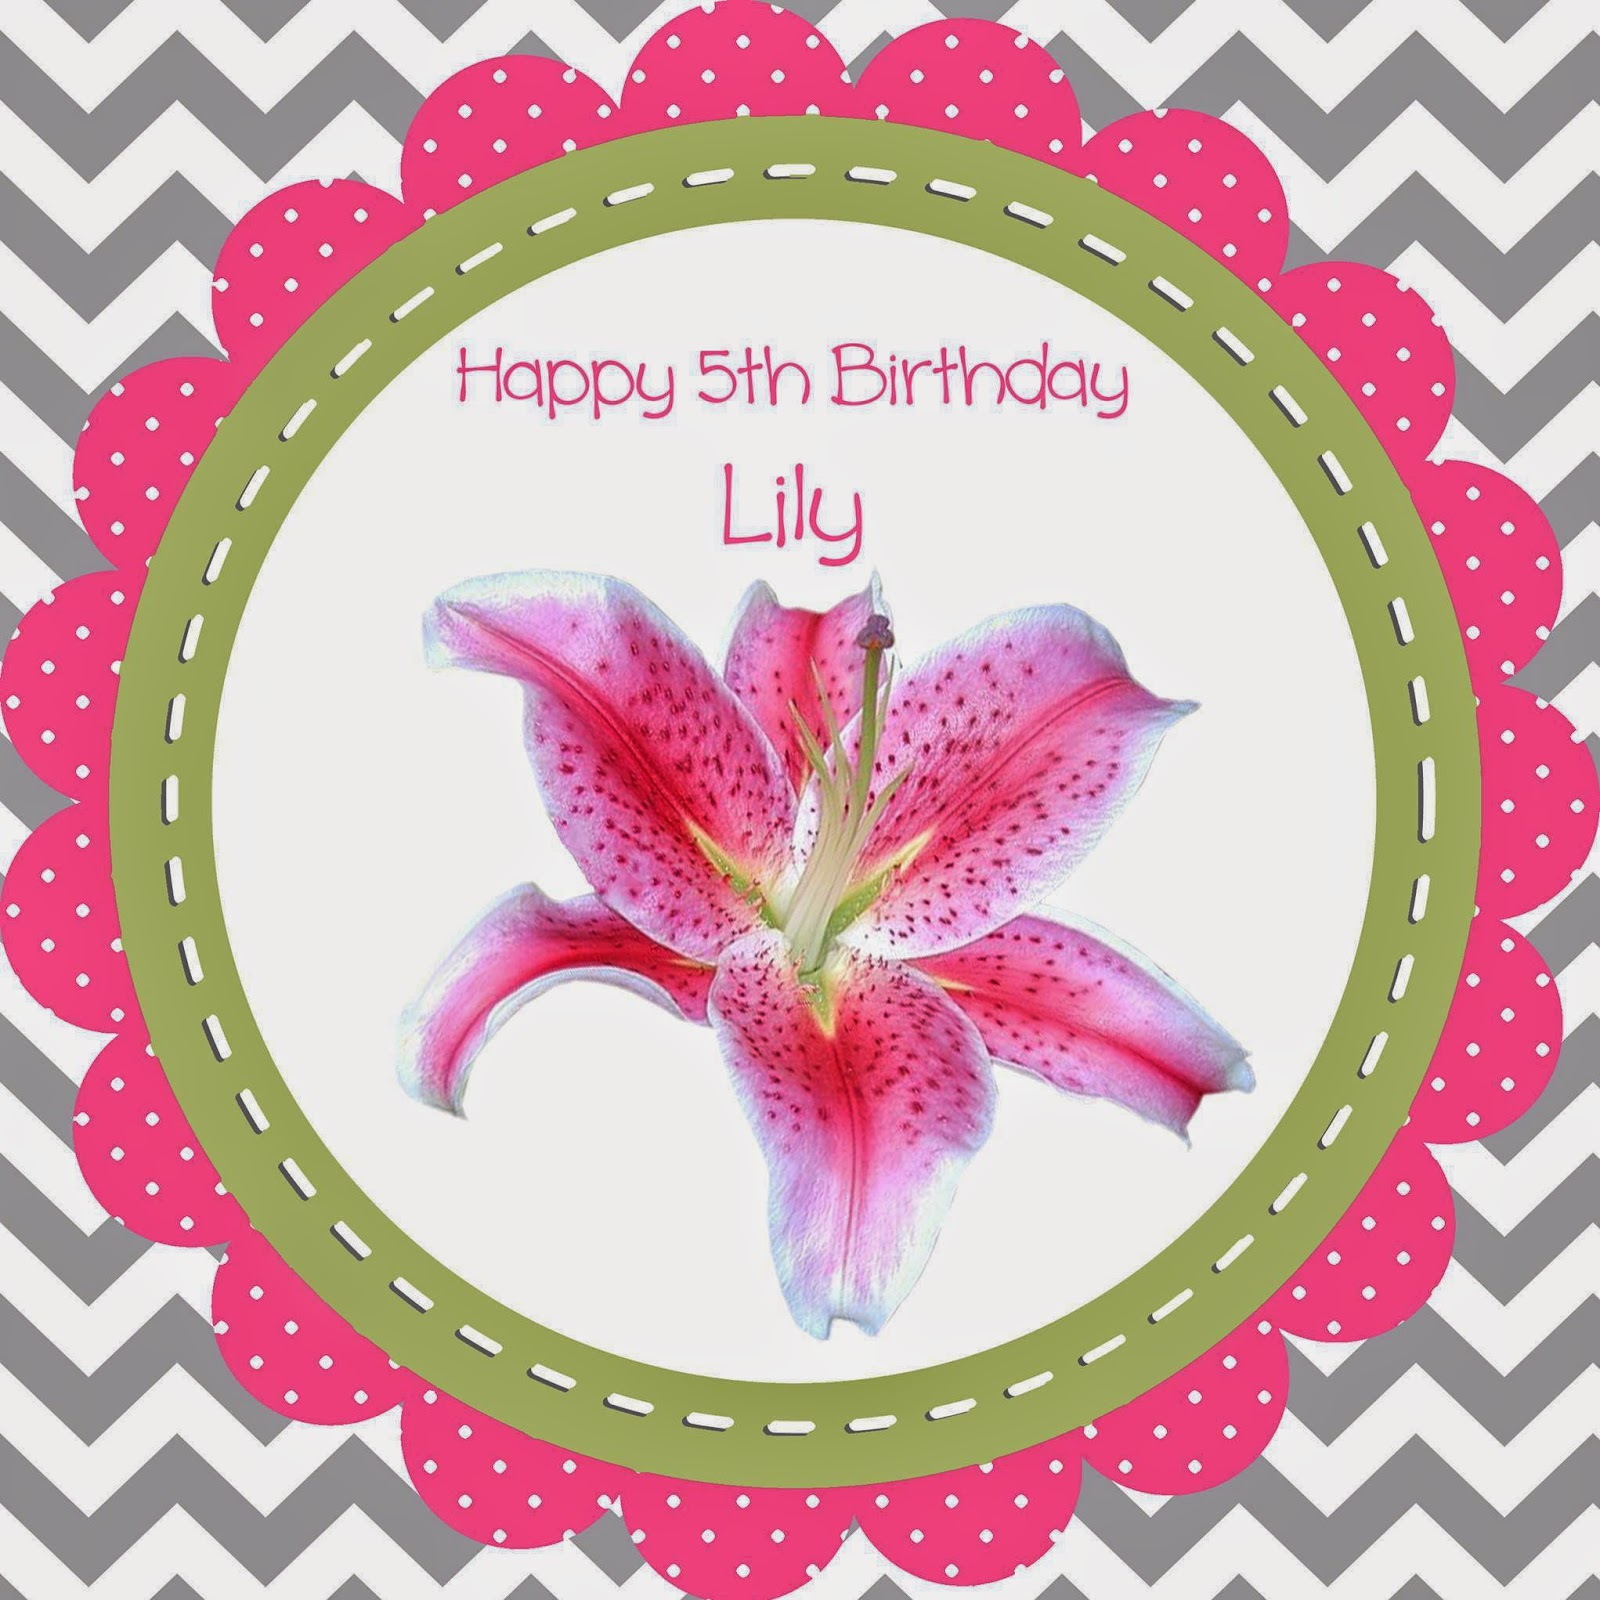 Rose and her lily lilys 5th birthday celebration my friend lisa shared this lovely photo with me and wrote celebrating the life of sweet lily happy birthday thinking of you today hannah izmirmasajfo